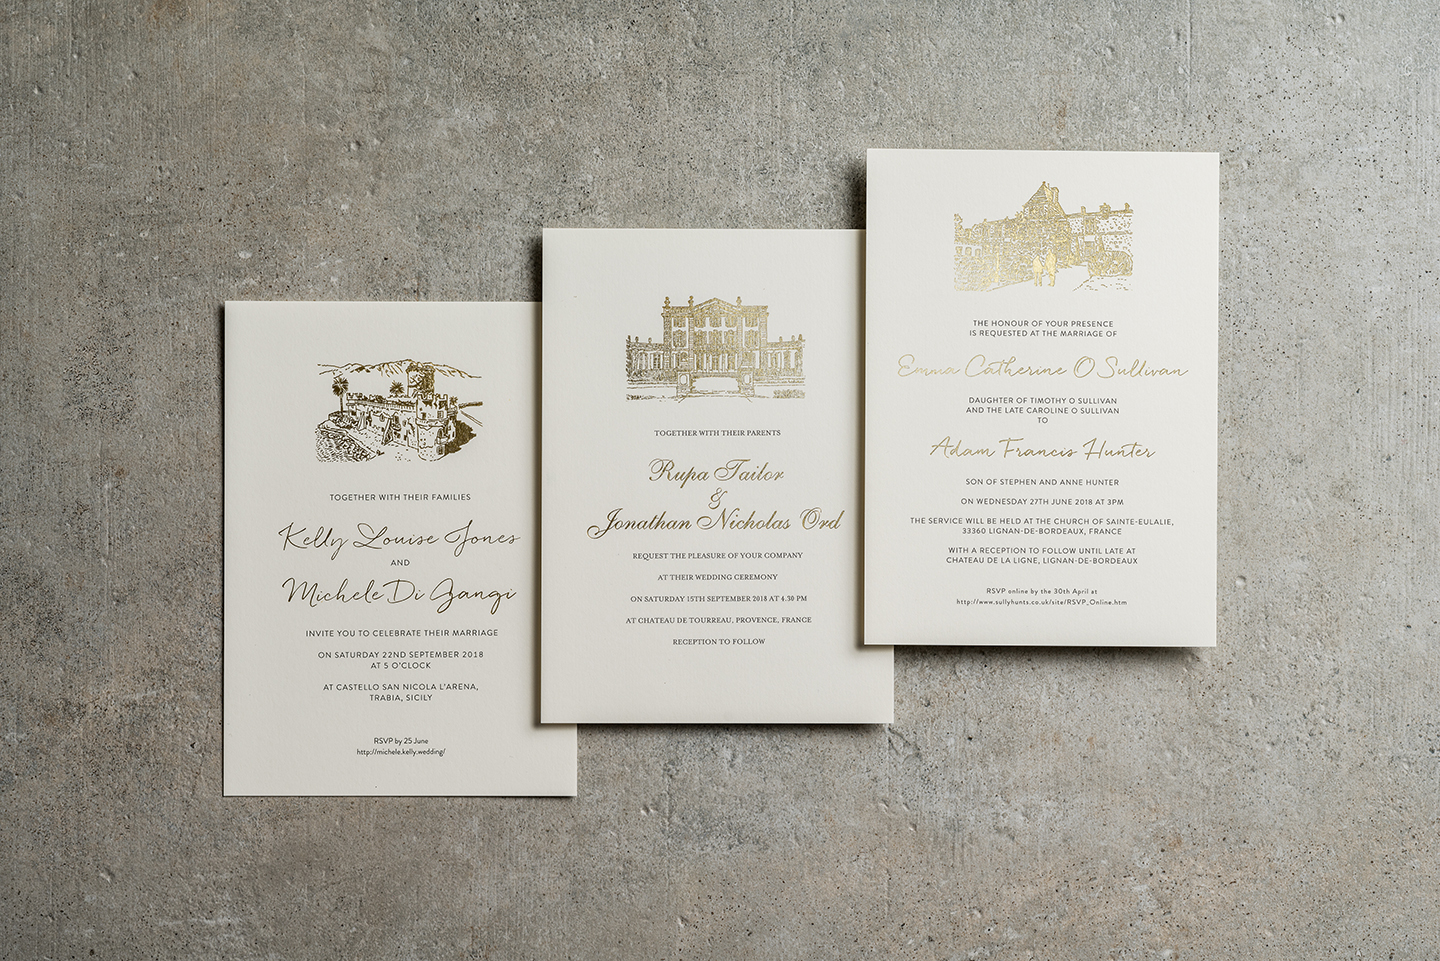 Gold Foil Venue Illustration Invitations | Top Wedding Stationery Trends 2020 | Foil Invite Company Blog